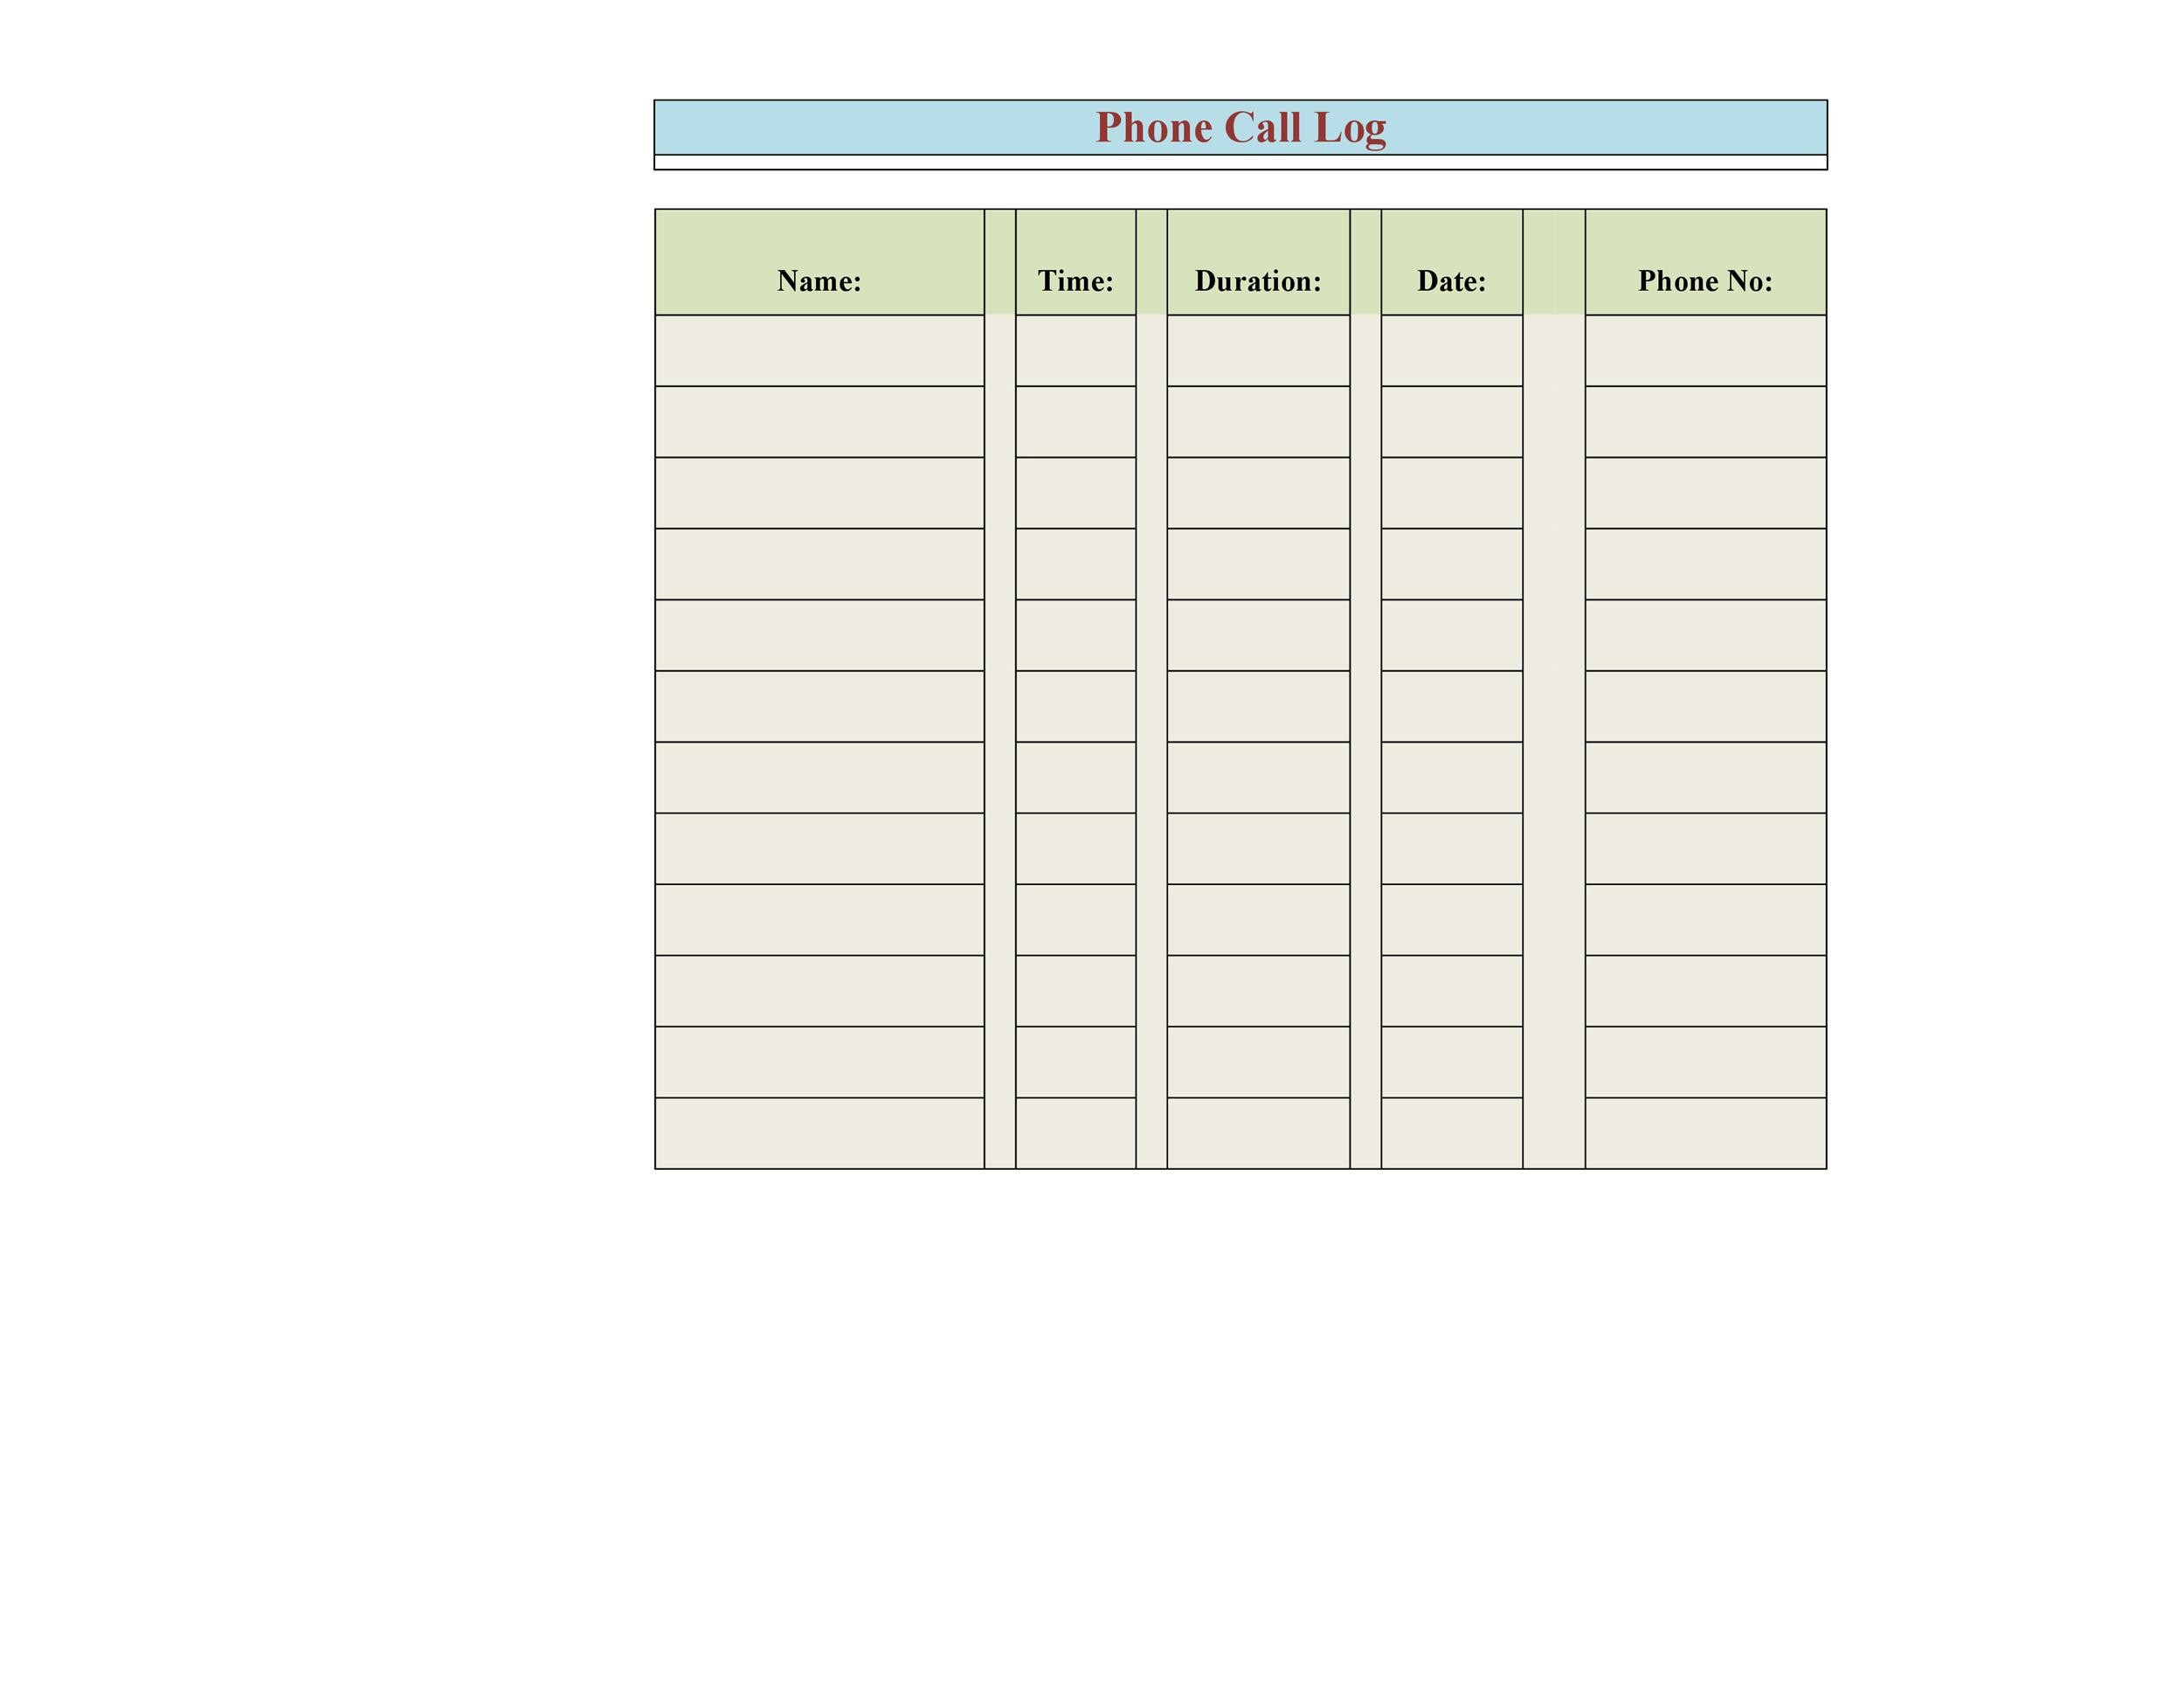 40+ Printable Call Log Templates in Microsoft Word and Excel - phone call log template